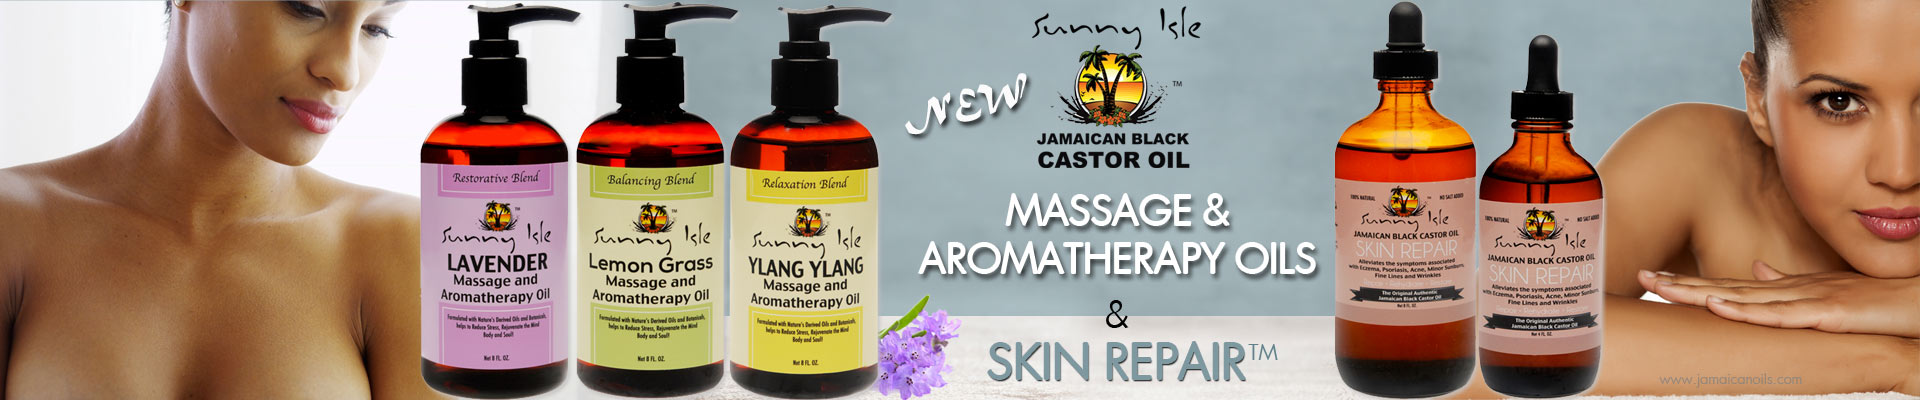 sunny-isle-massage-and-skin-therapy-at-jamaicanoils.jpg